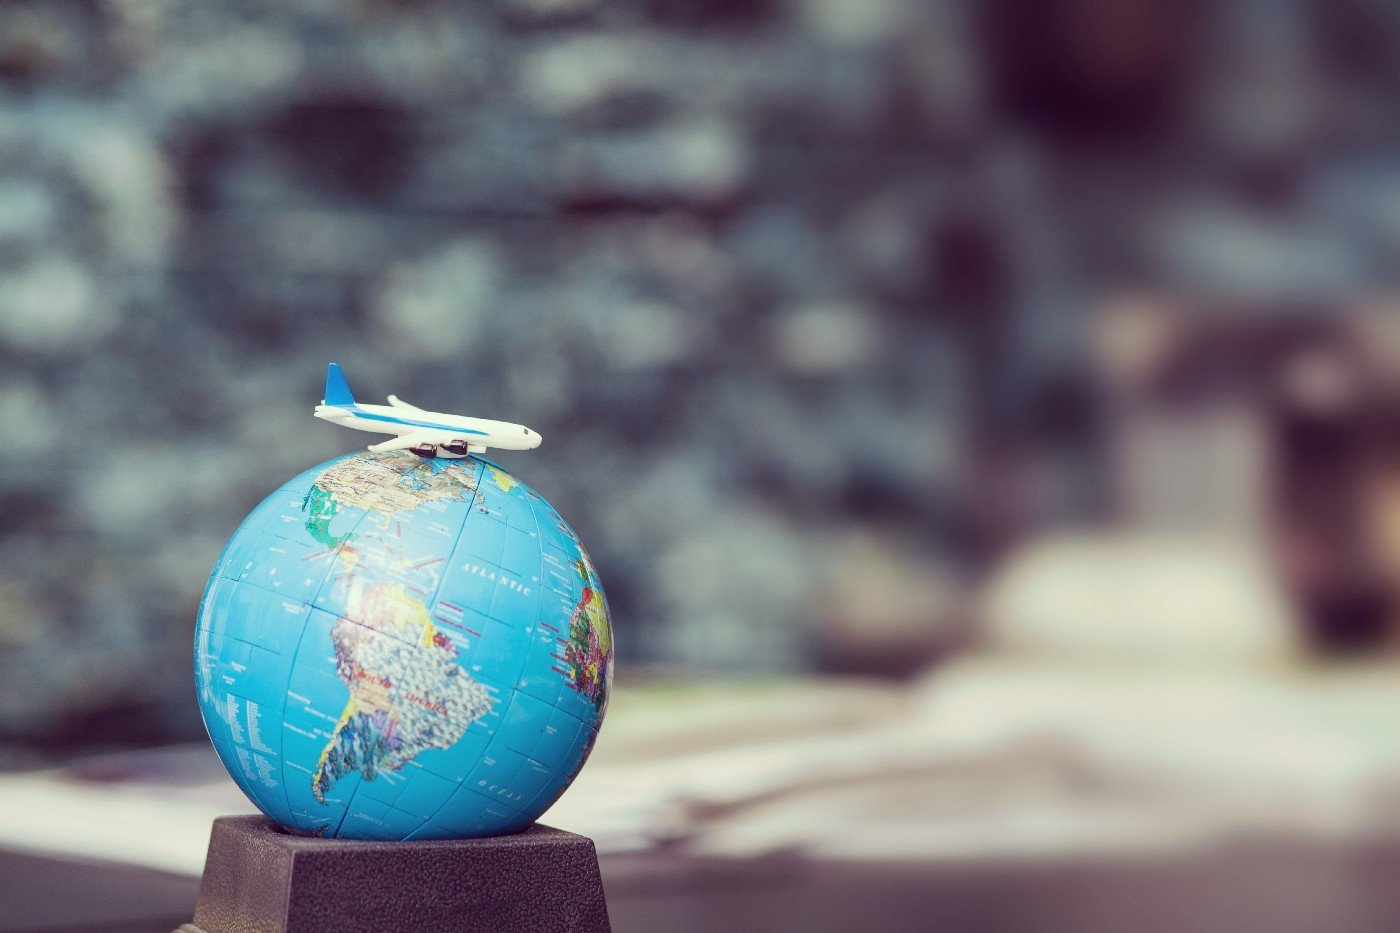 Miniature globe with a model airplane on top